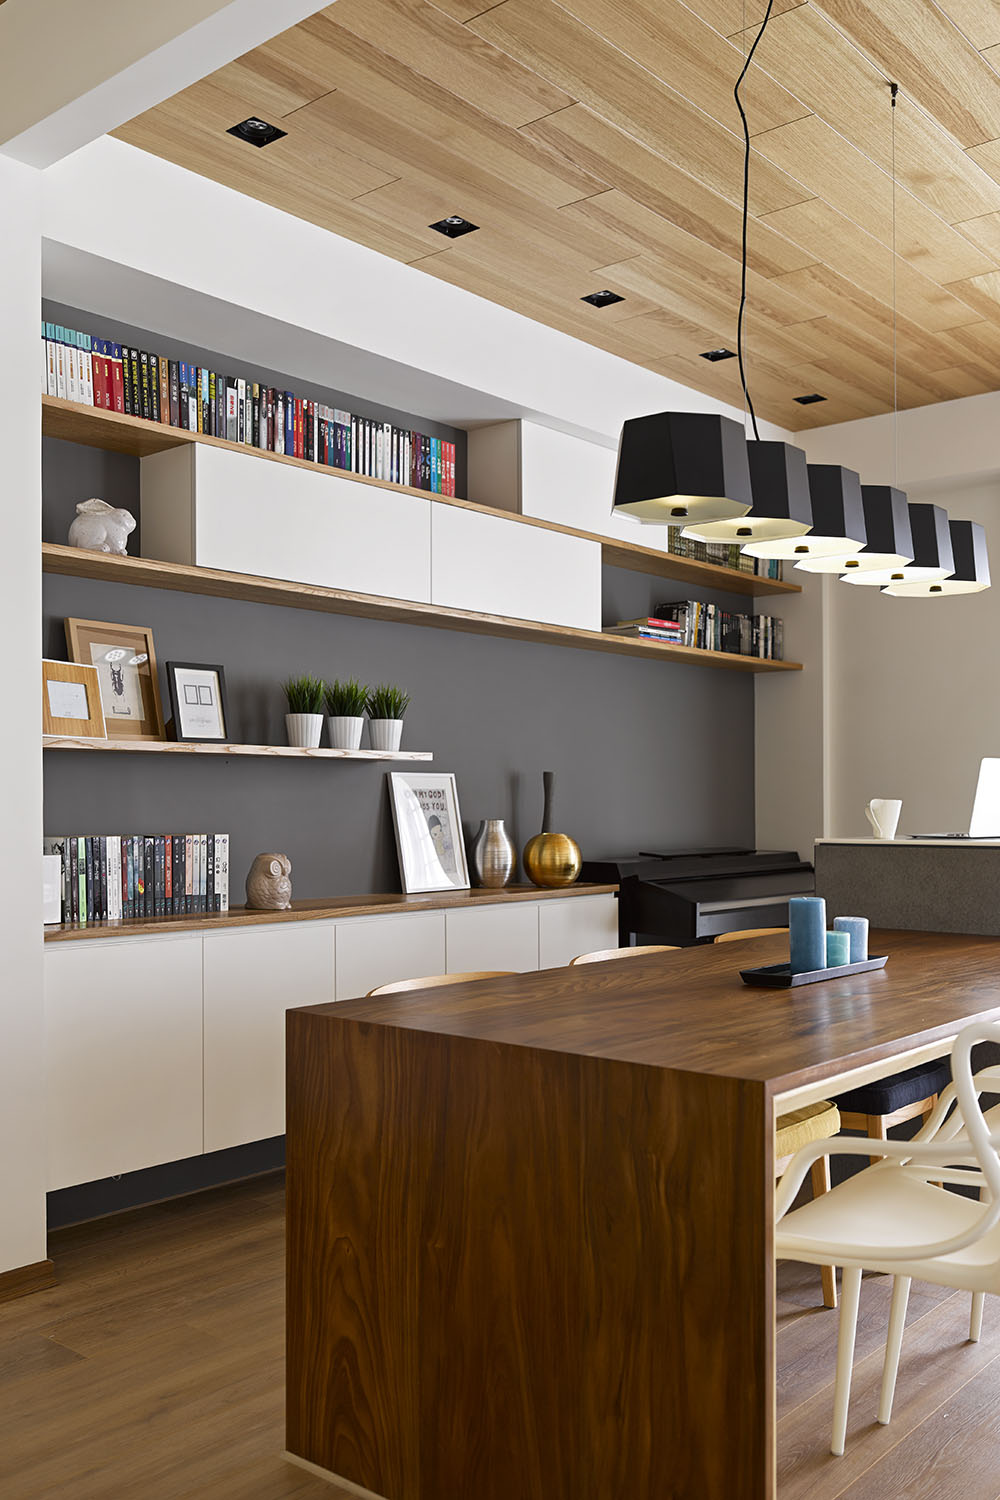 Liu's Warm Wooden Apartment in New Taipei City by HOYA Design-08